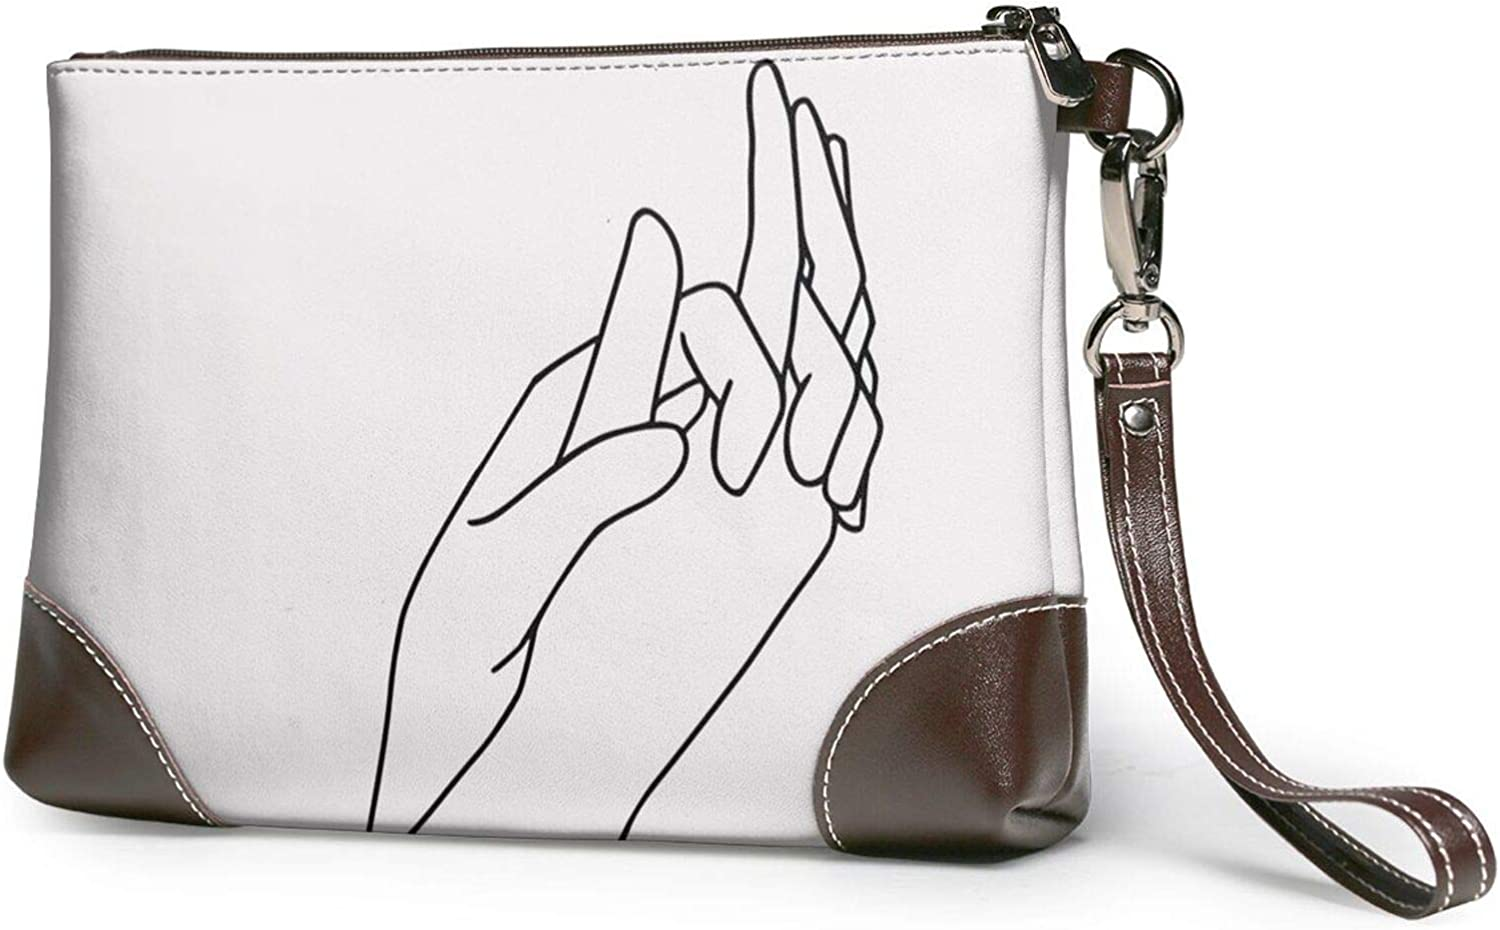 Holding Hands Line Clutch favorite Baltimore Mall Wristlet Wallet Leather Purses